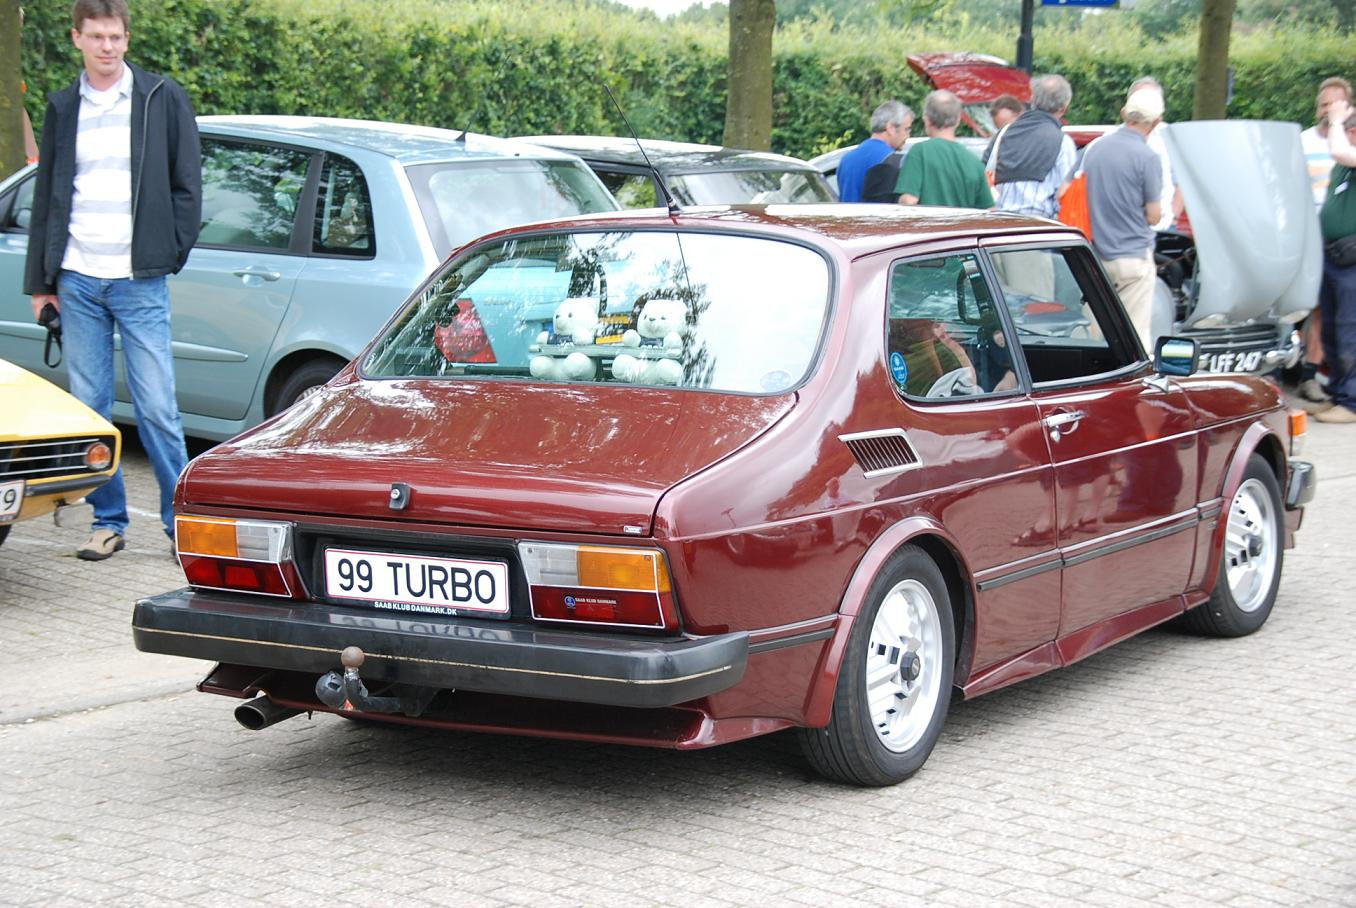 Saab 99 Turbo | Flickr - Photo Sharing!